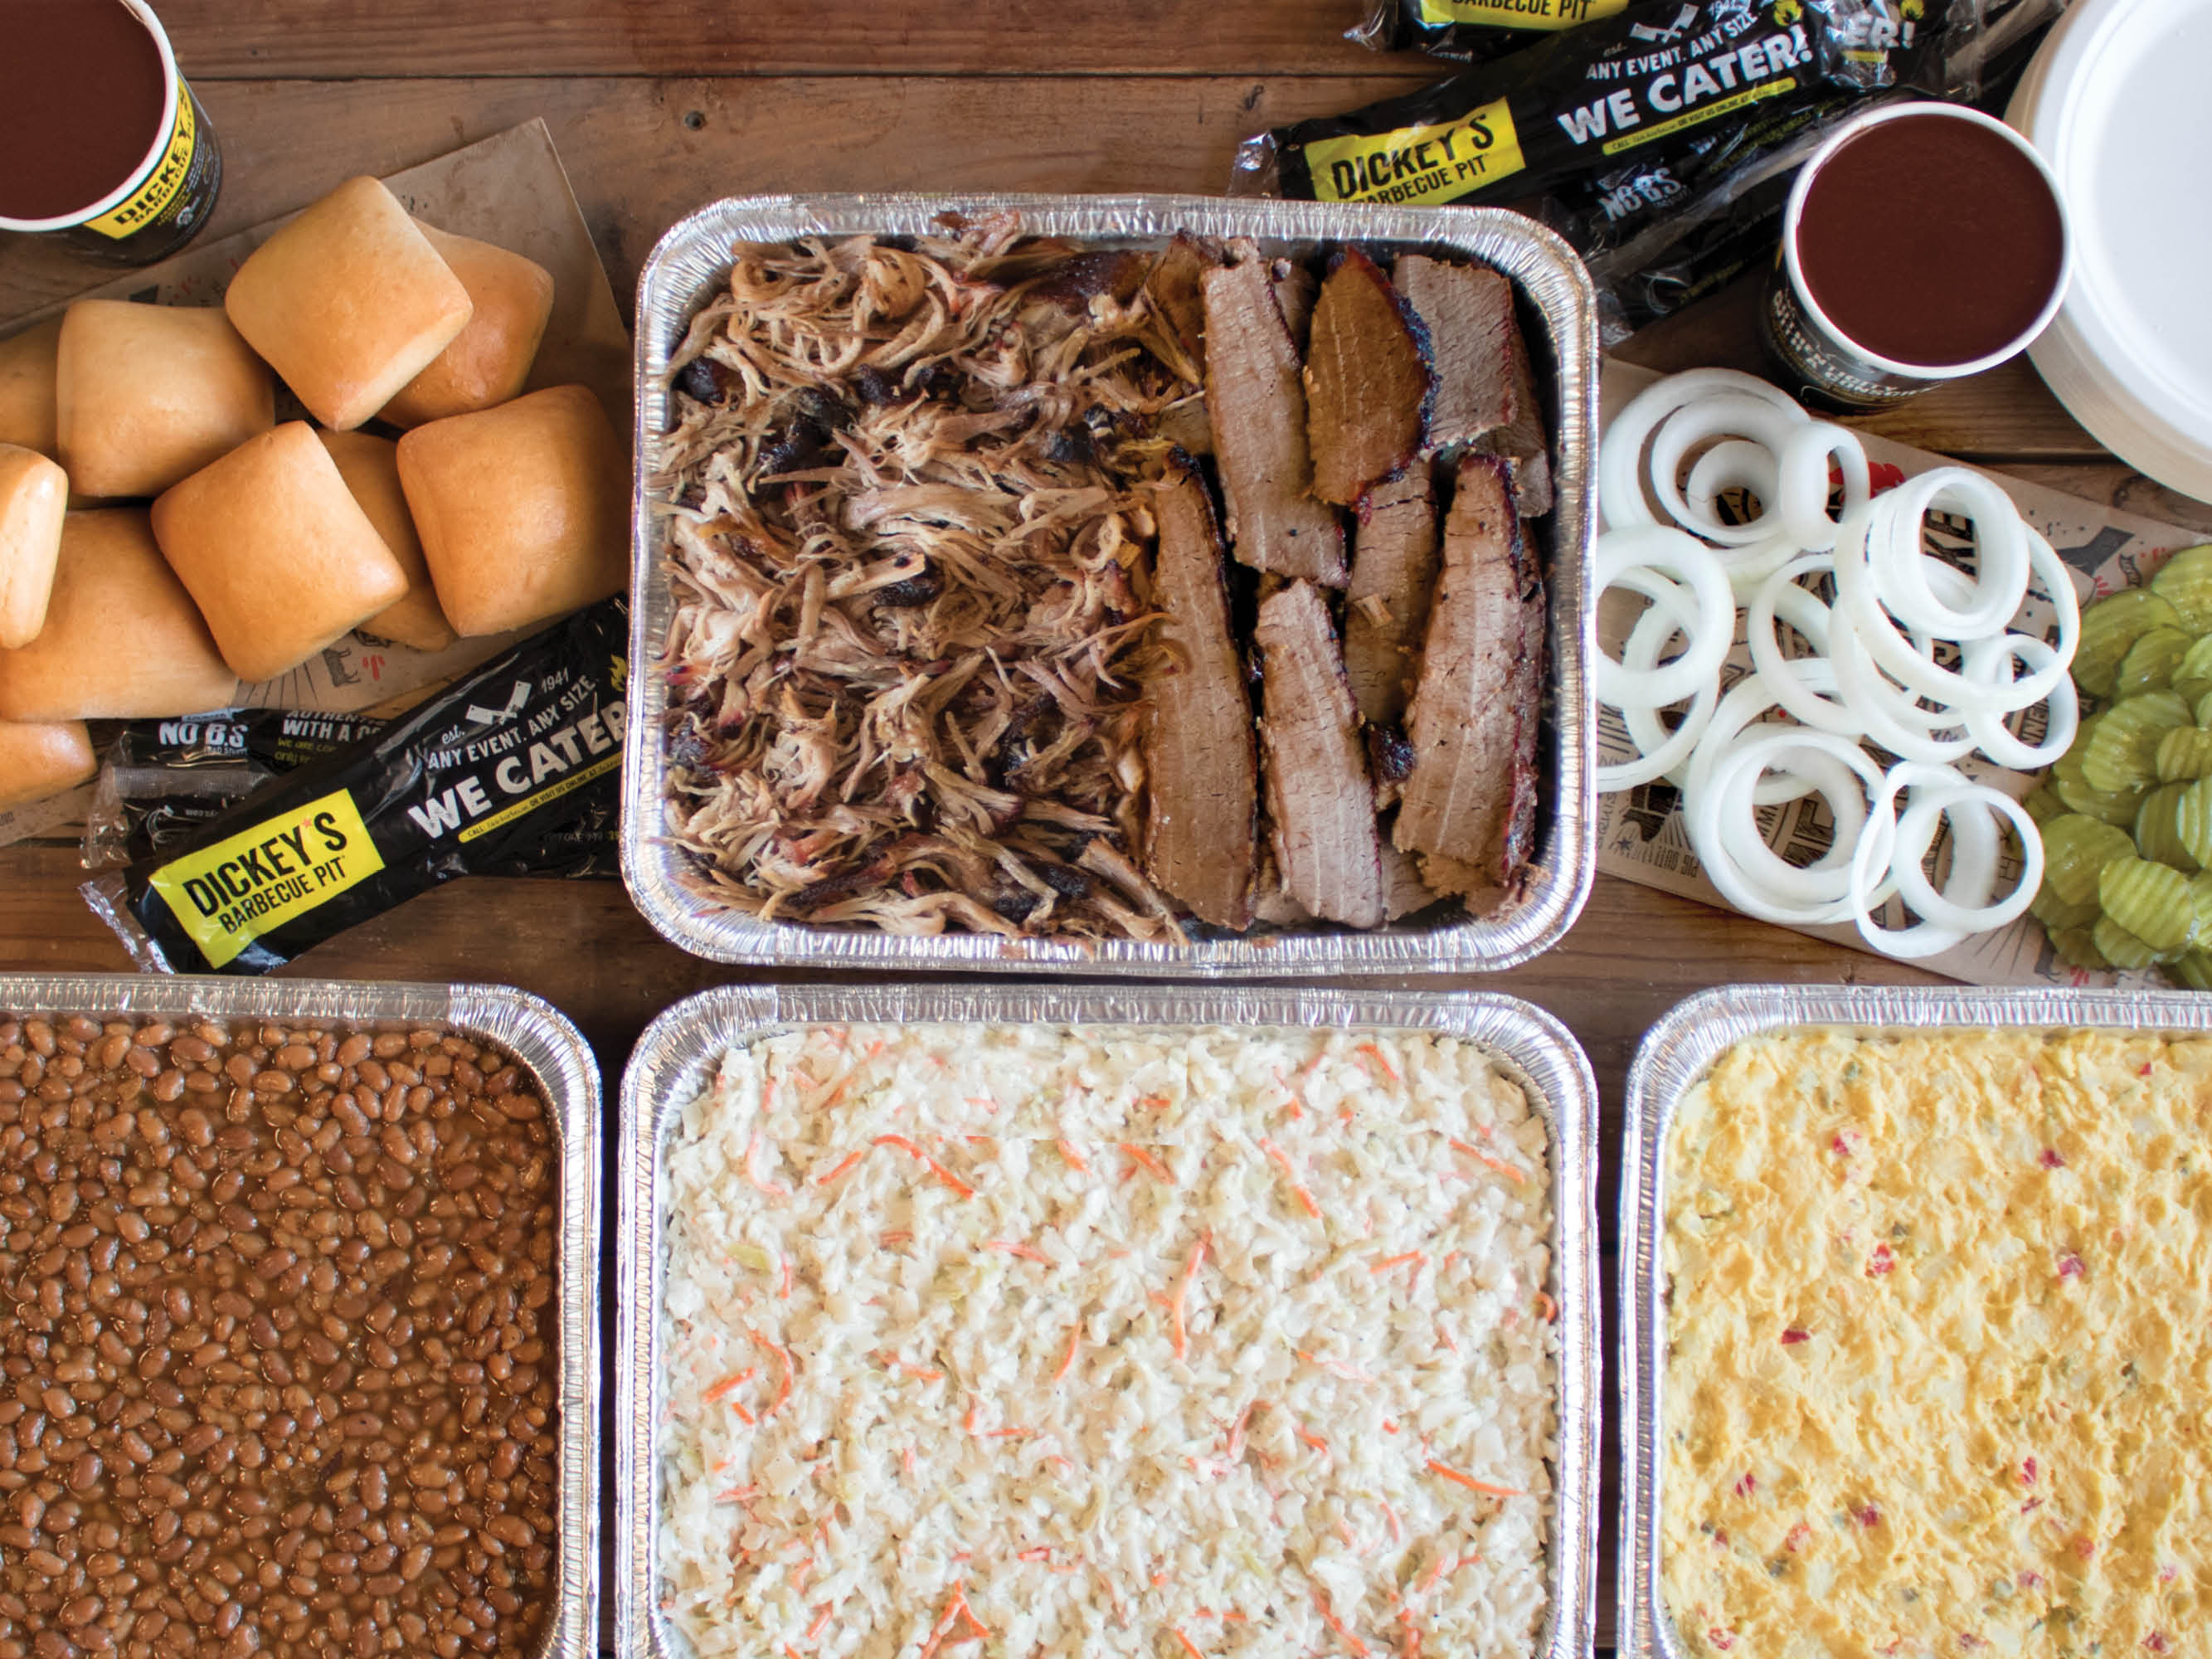 PA Live: Dickey's Tailgate Party Pack